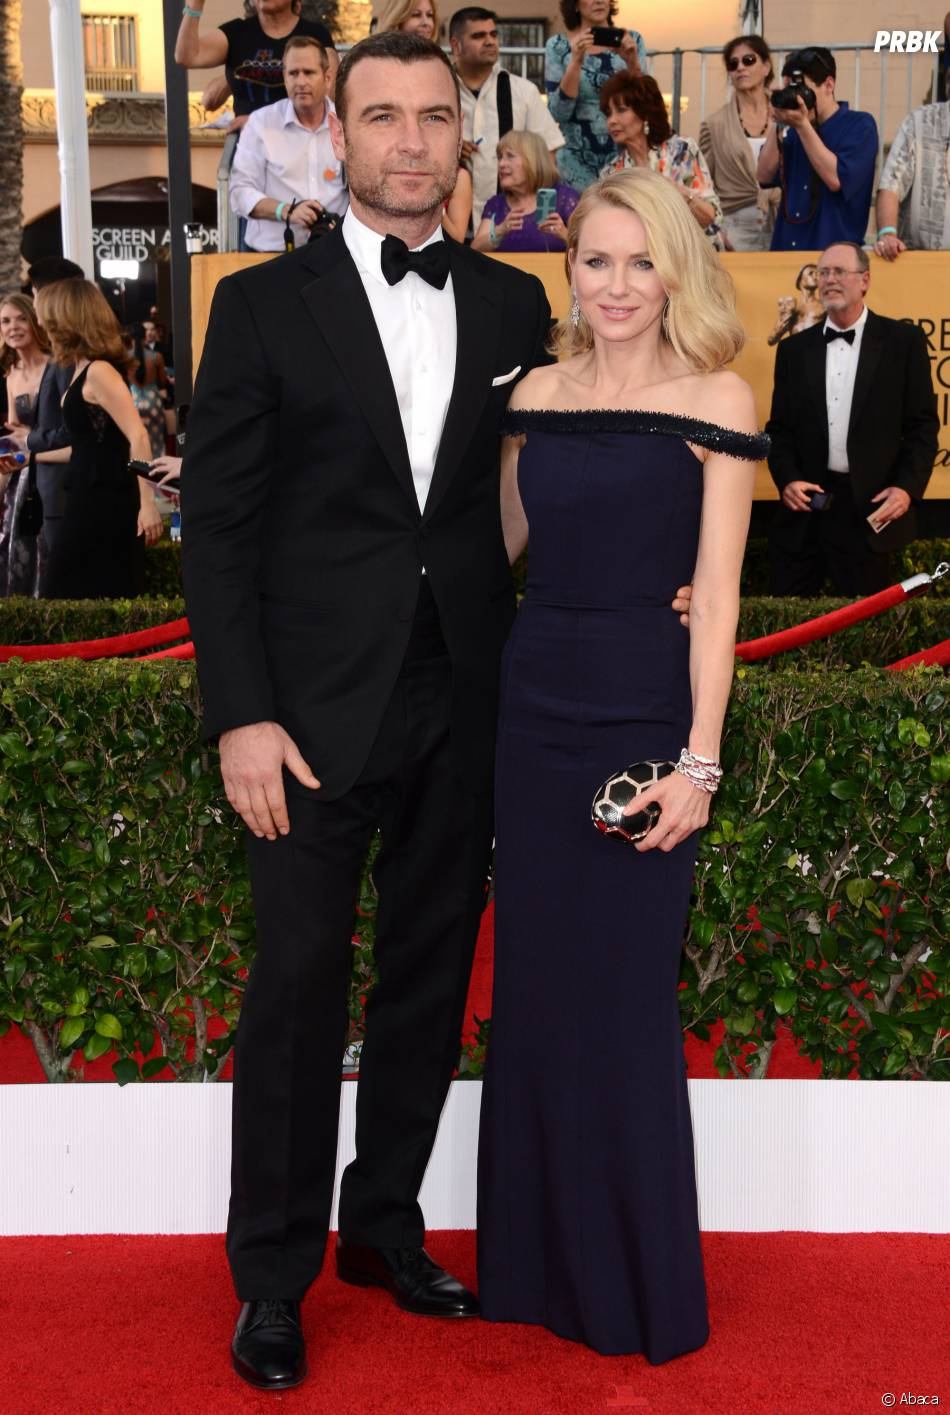 Naomi Watts et Liev Schreiber en couple aux SAG Awards 2015, le 25 janvier 2015 à Los Angeles